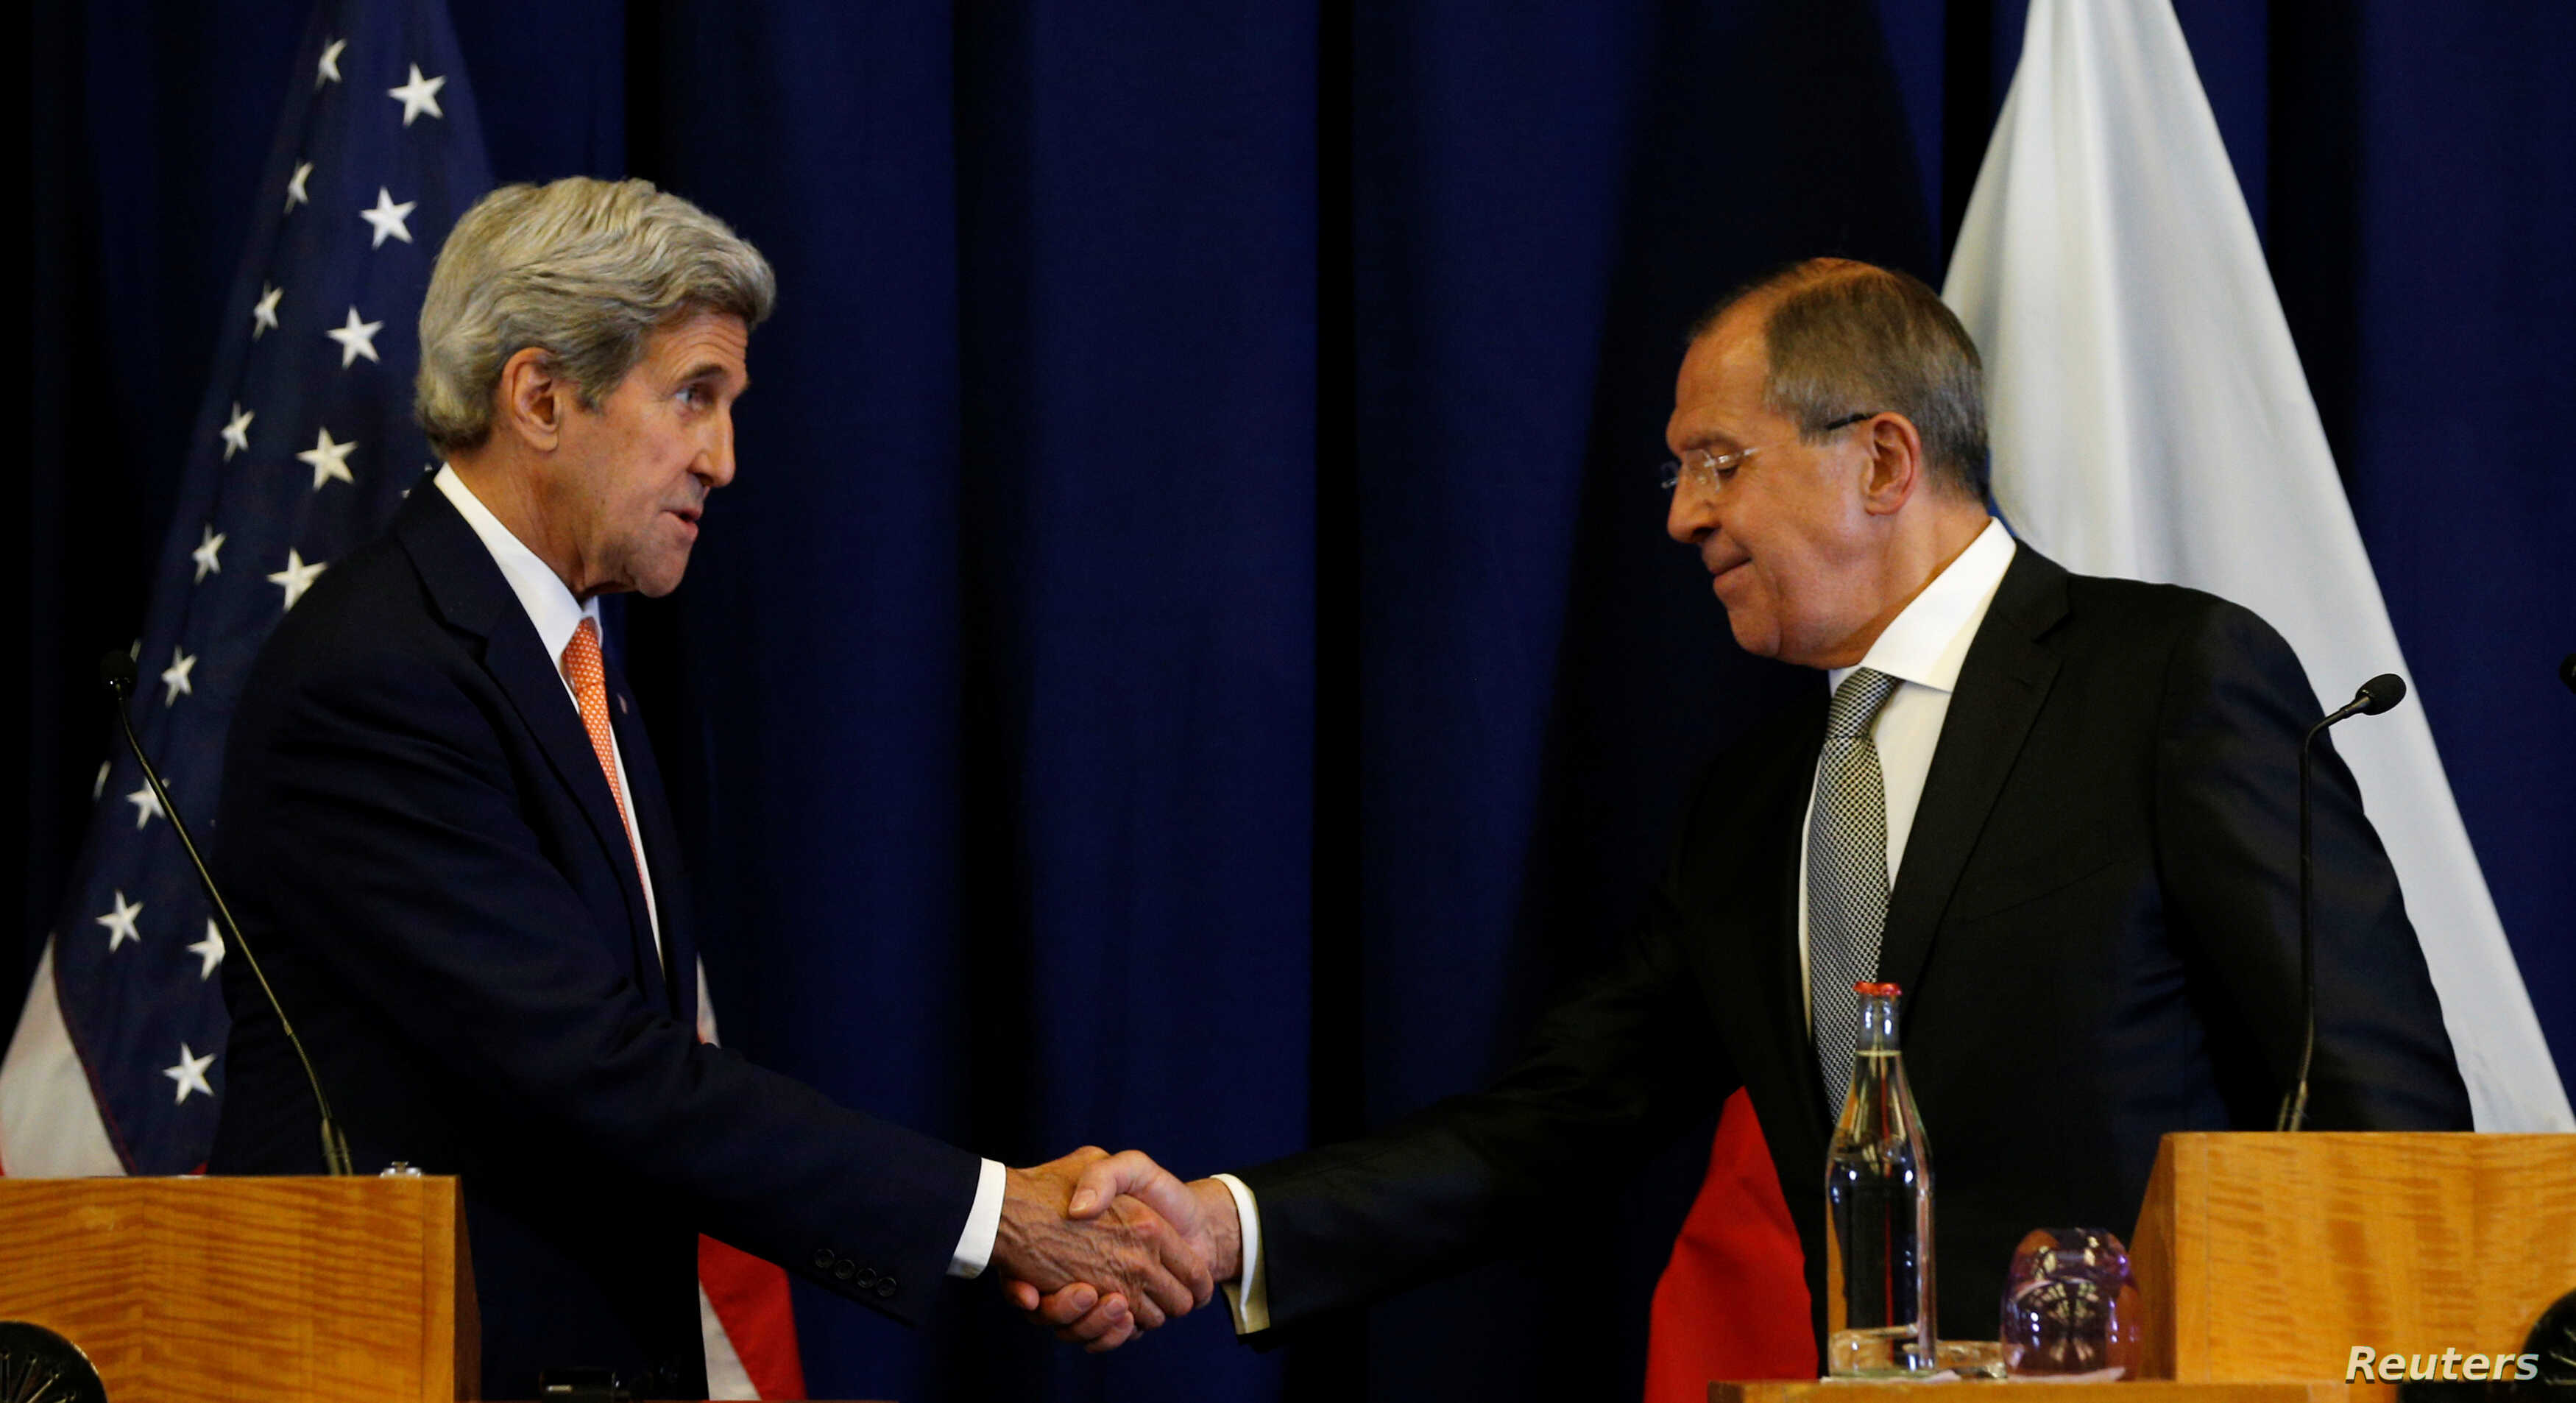 U.S. Secretary of State John Kerry and Russian Foreign Minister Sergei Lavrov shake hands at the conclusion of their press conference following their meeting in Geneva, Switzerland, Sept. 9, 2016.